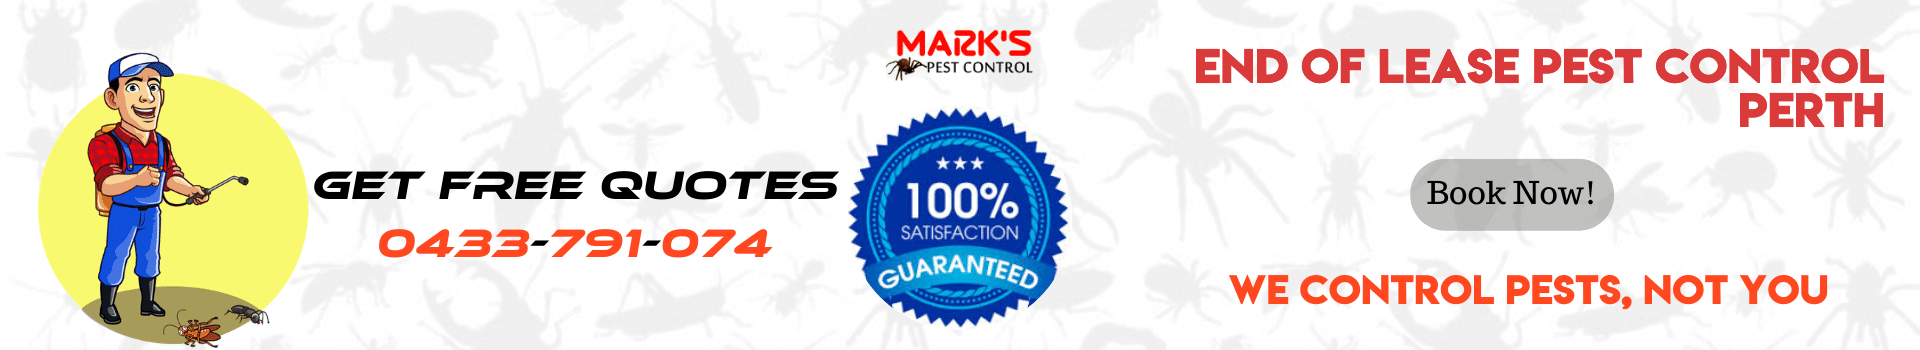 End Of Lease Pest Control Perth